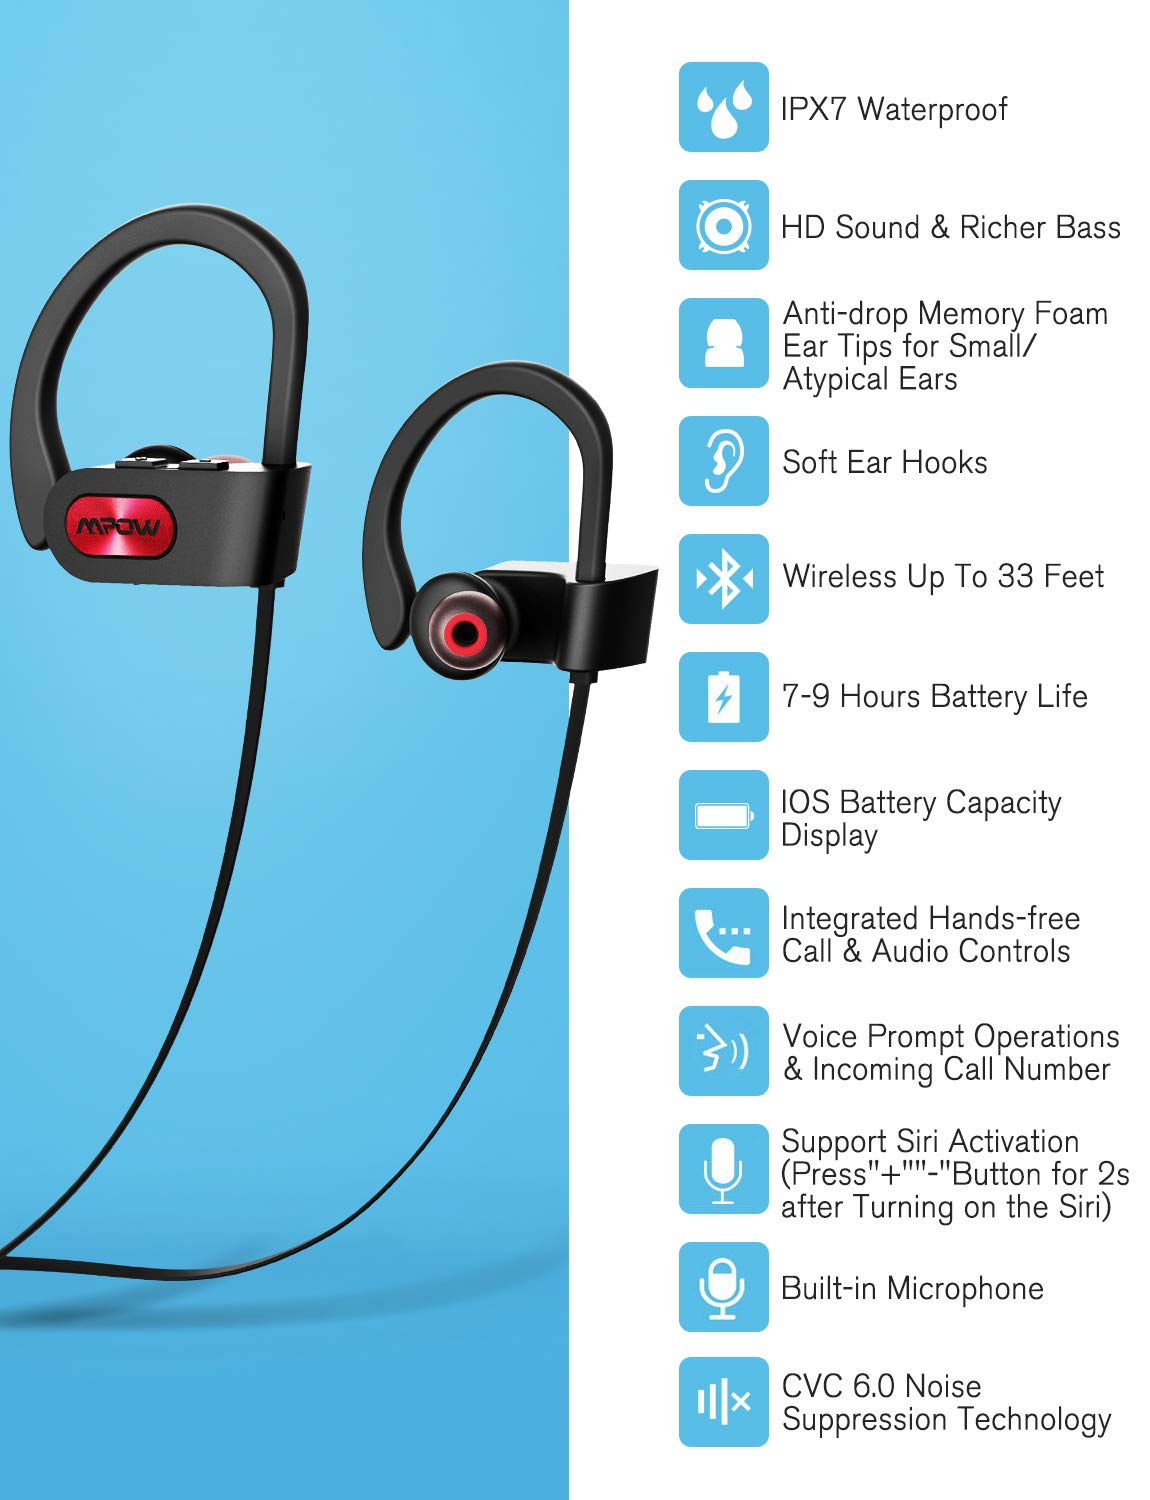 Mpow-Flame-Bluetooth-Headphones-Waterproof-IPX7-Wireless-Earbuds-Sport-Richer-Bass-HiFi-Stereo-in-Ear-Earphones-wCase-7-9-Hrs-Playback-Noise-Cancelling-Microphone-Comfy-Fast-Pairing